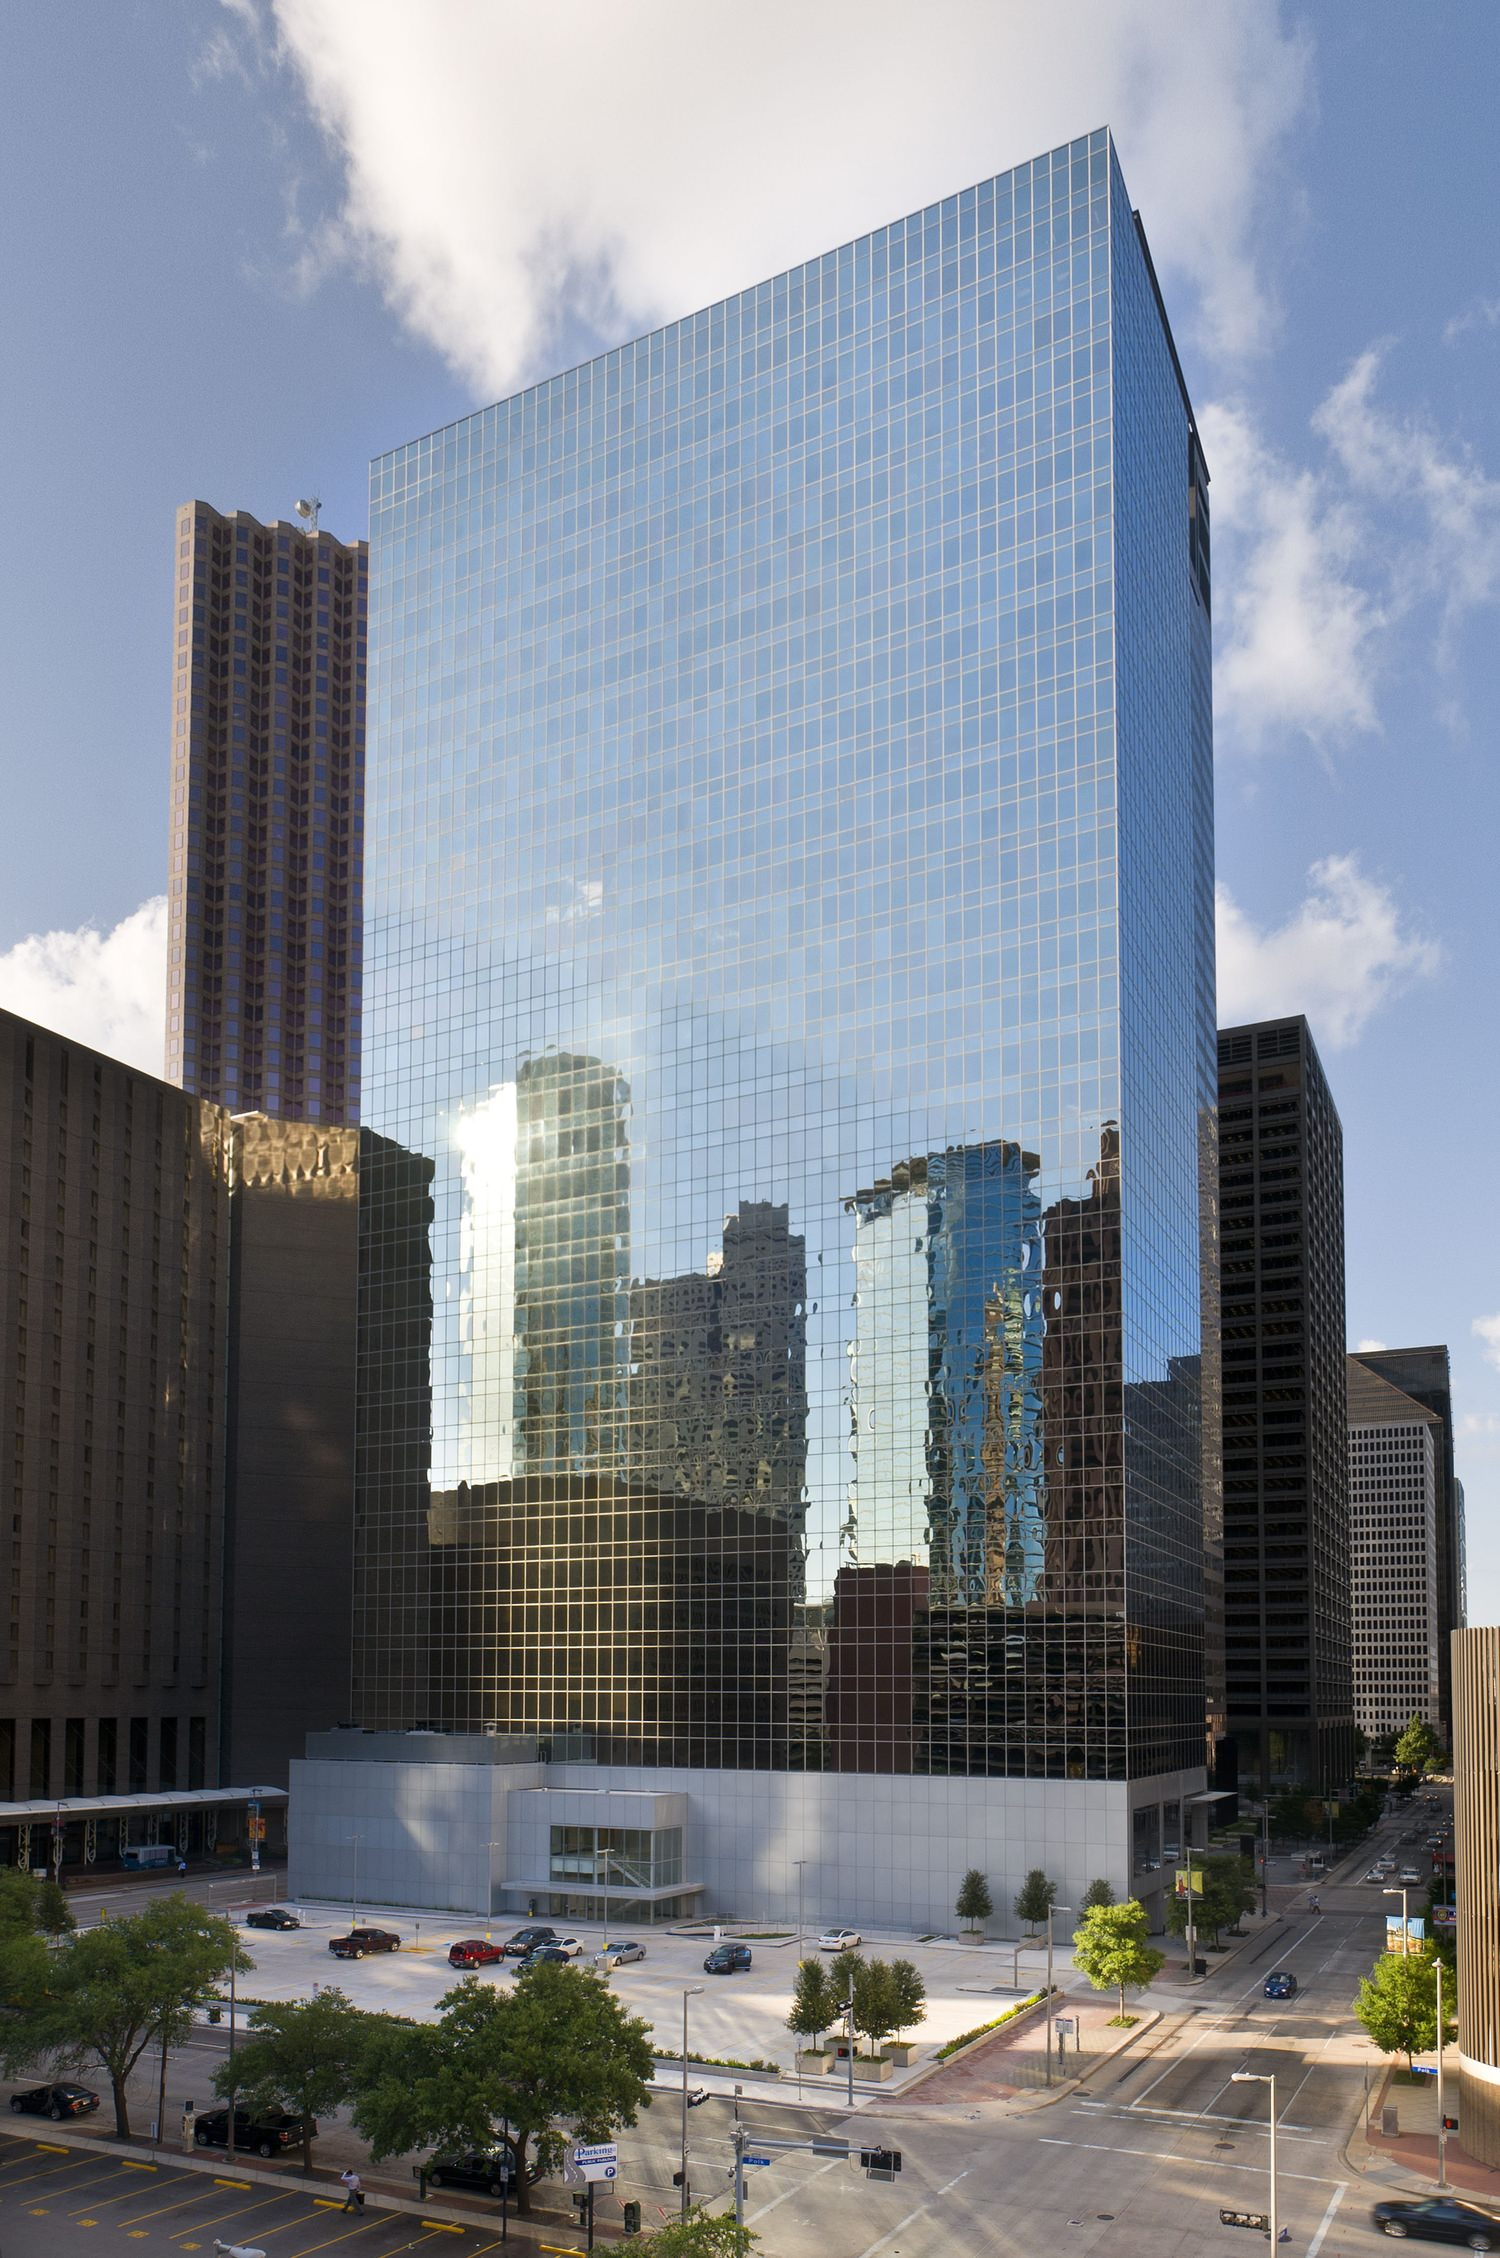 A tall skyscraper that is full of glass windows on the oustide with a plaza next to it.